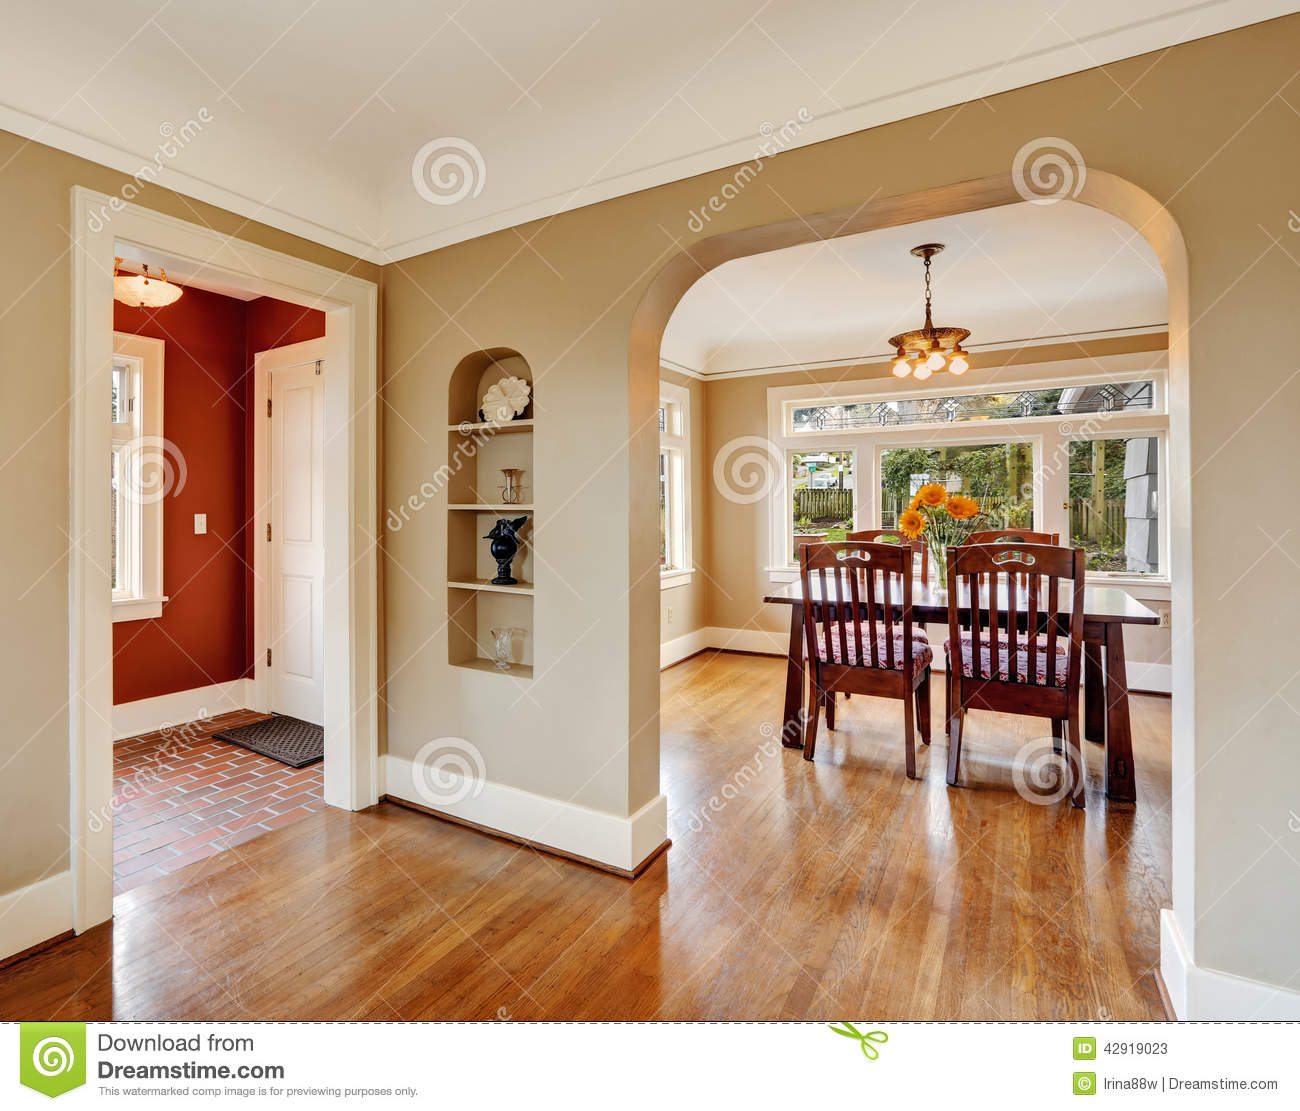 House interior view of dining area entrance hall stock for House plans with inside photos